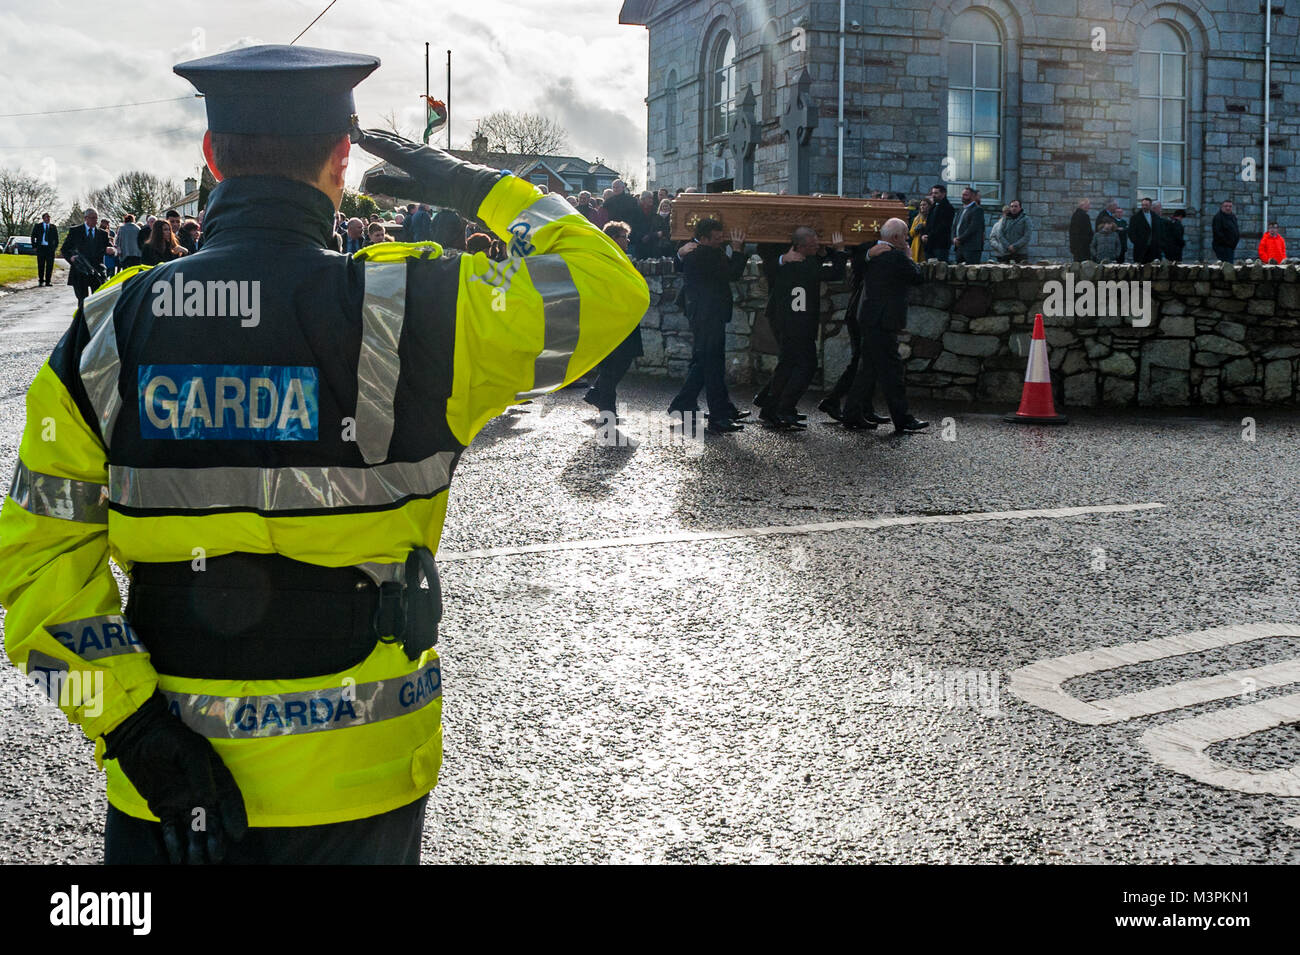 Ovens, Ireland. 12th Feb, 2018. The funeral of footballer Liam Miller took place today at St. John the Baptist Church, Stock Photo